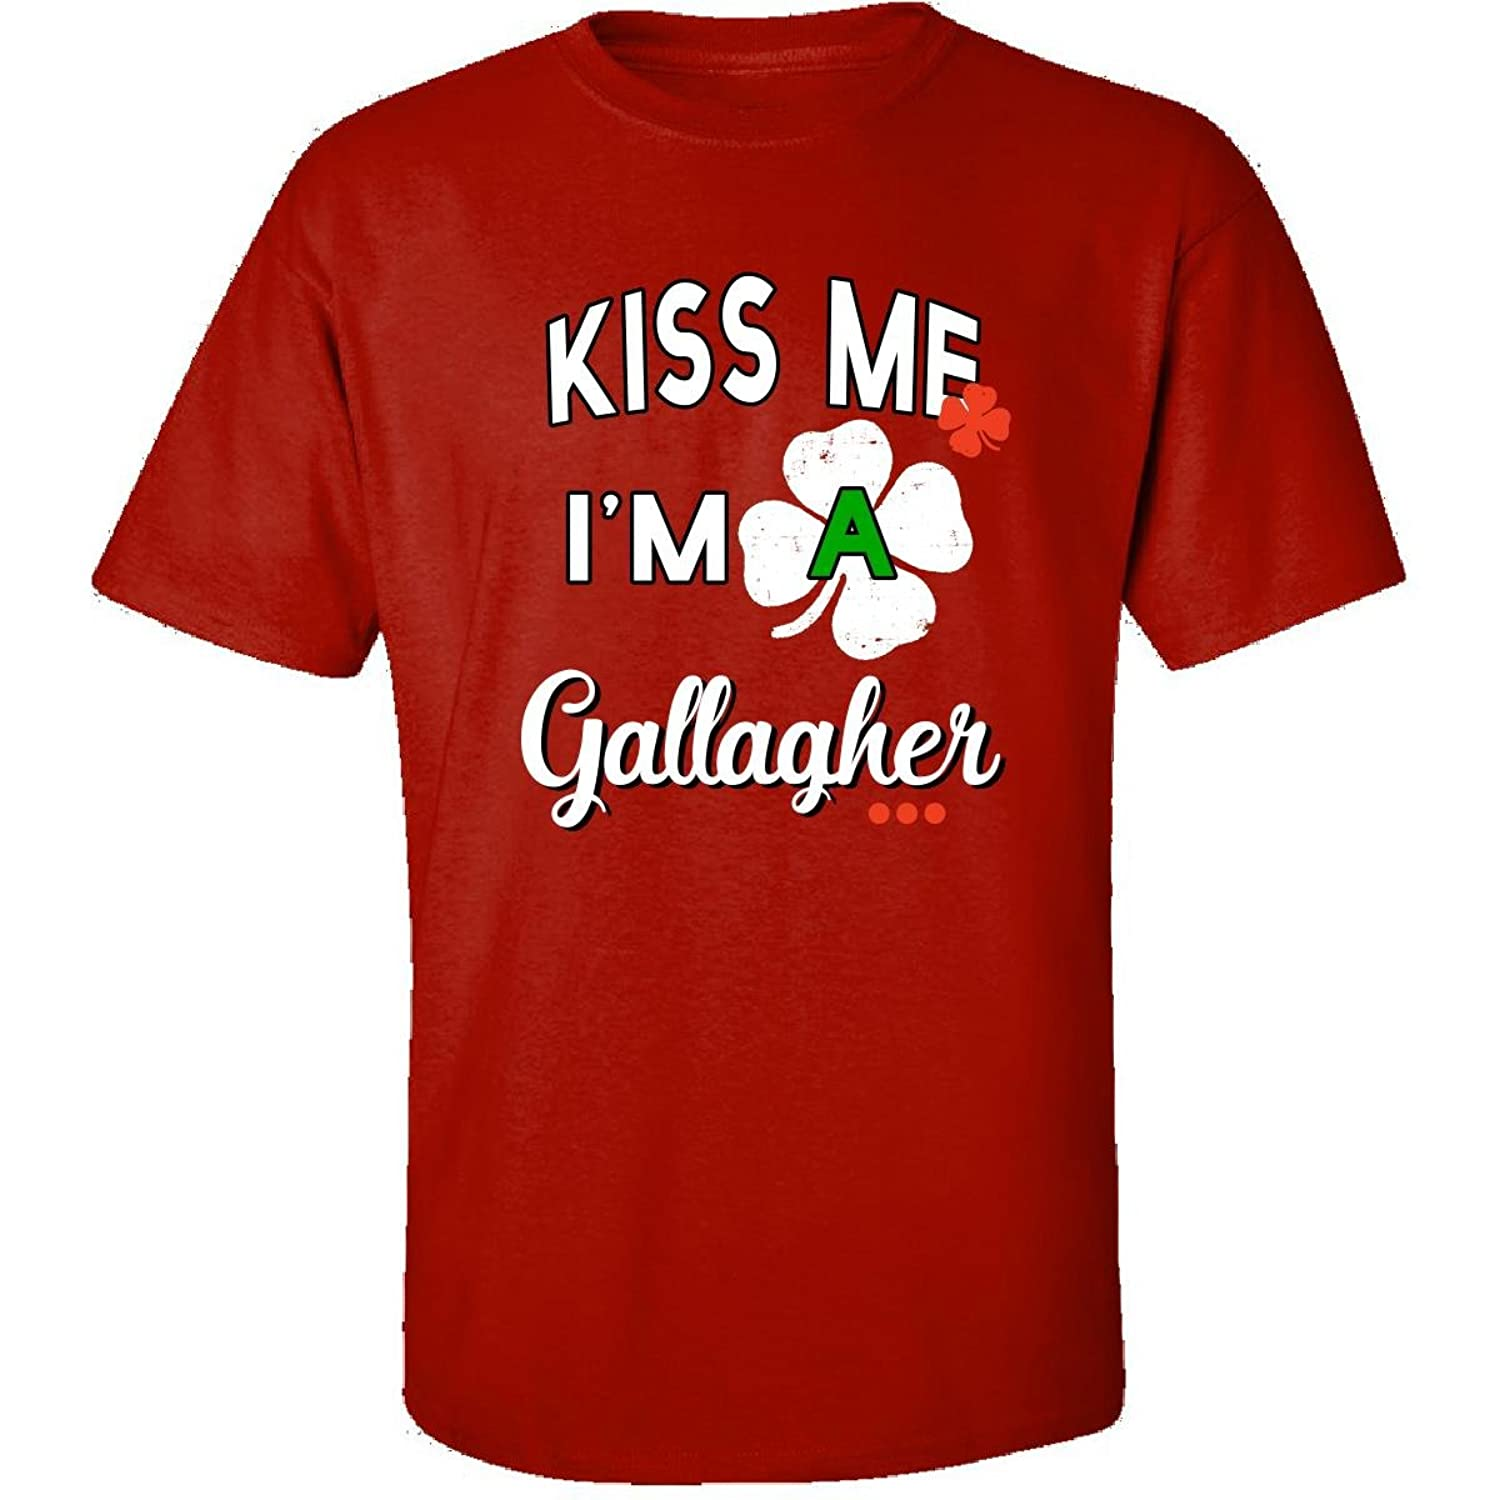 Funny St Patricks Day Irish Gift - Kiss Me Im A Gallagher - Adult Shirt